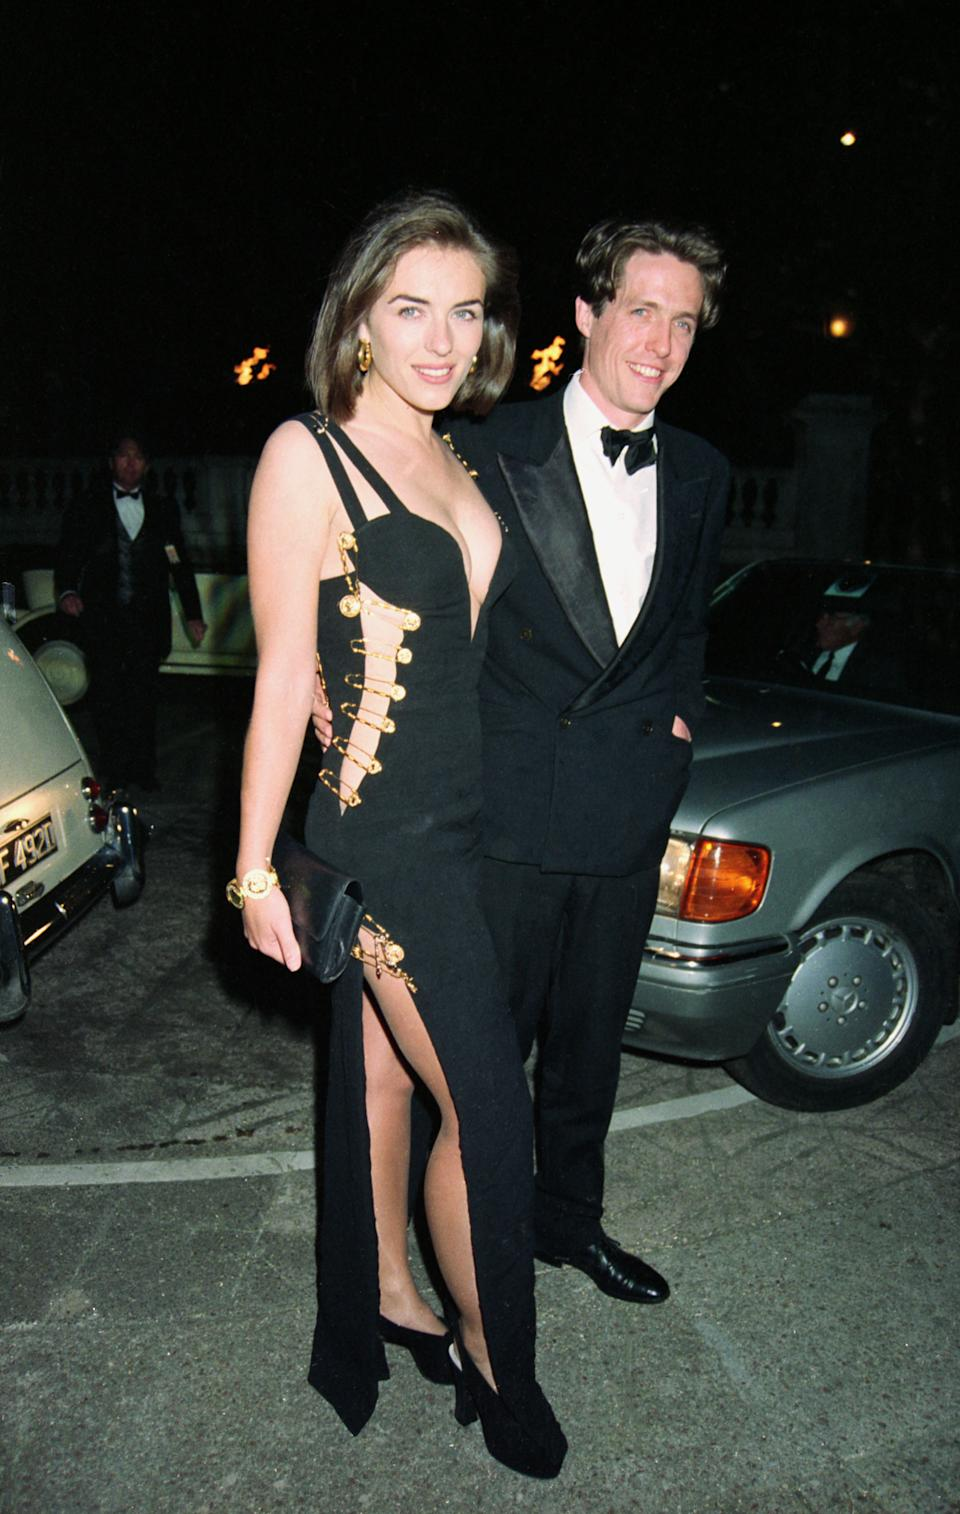 The black Versace gown was held together by oversized gold safety pins [Image: Getty]